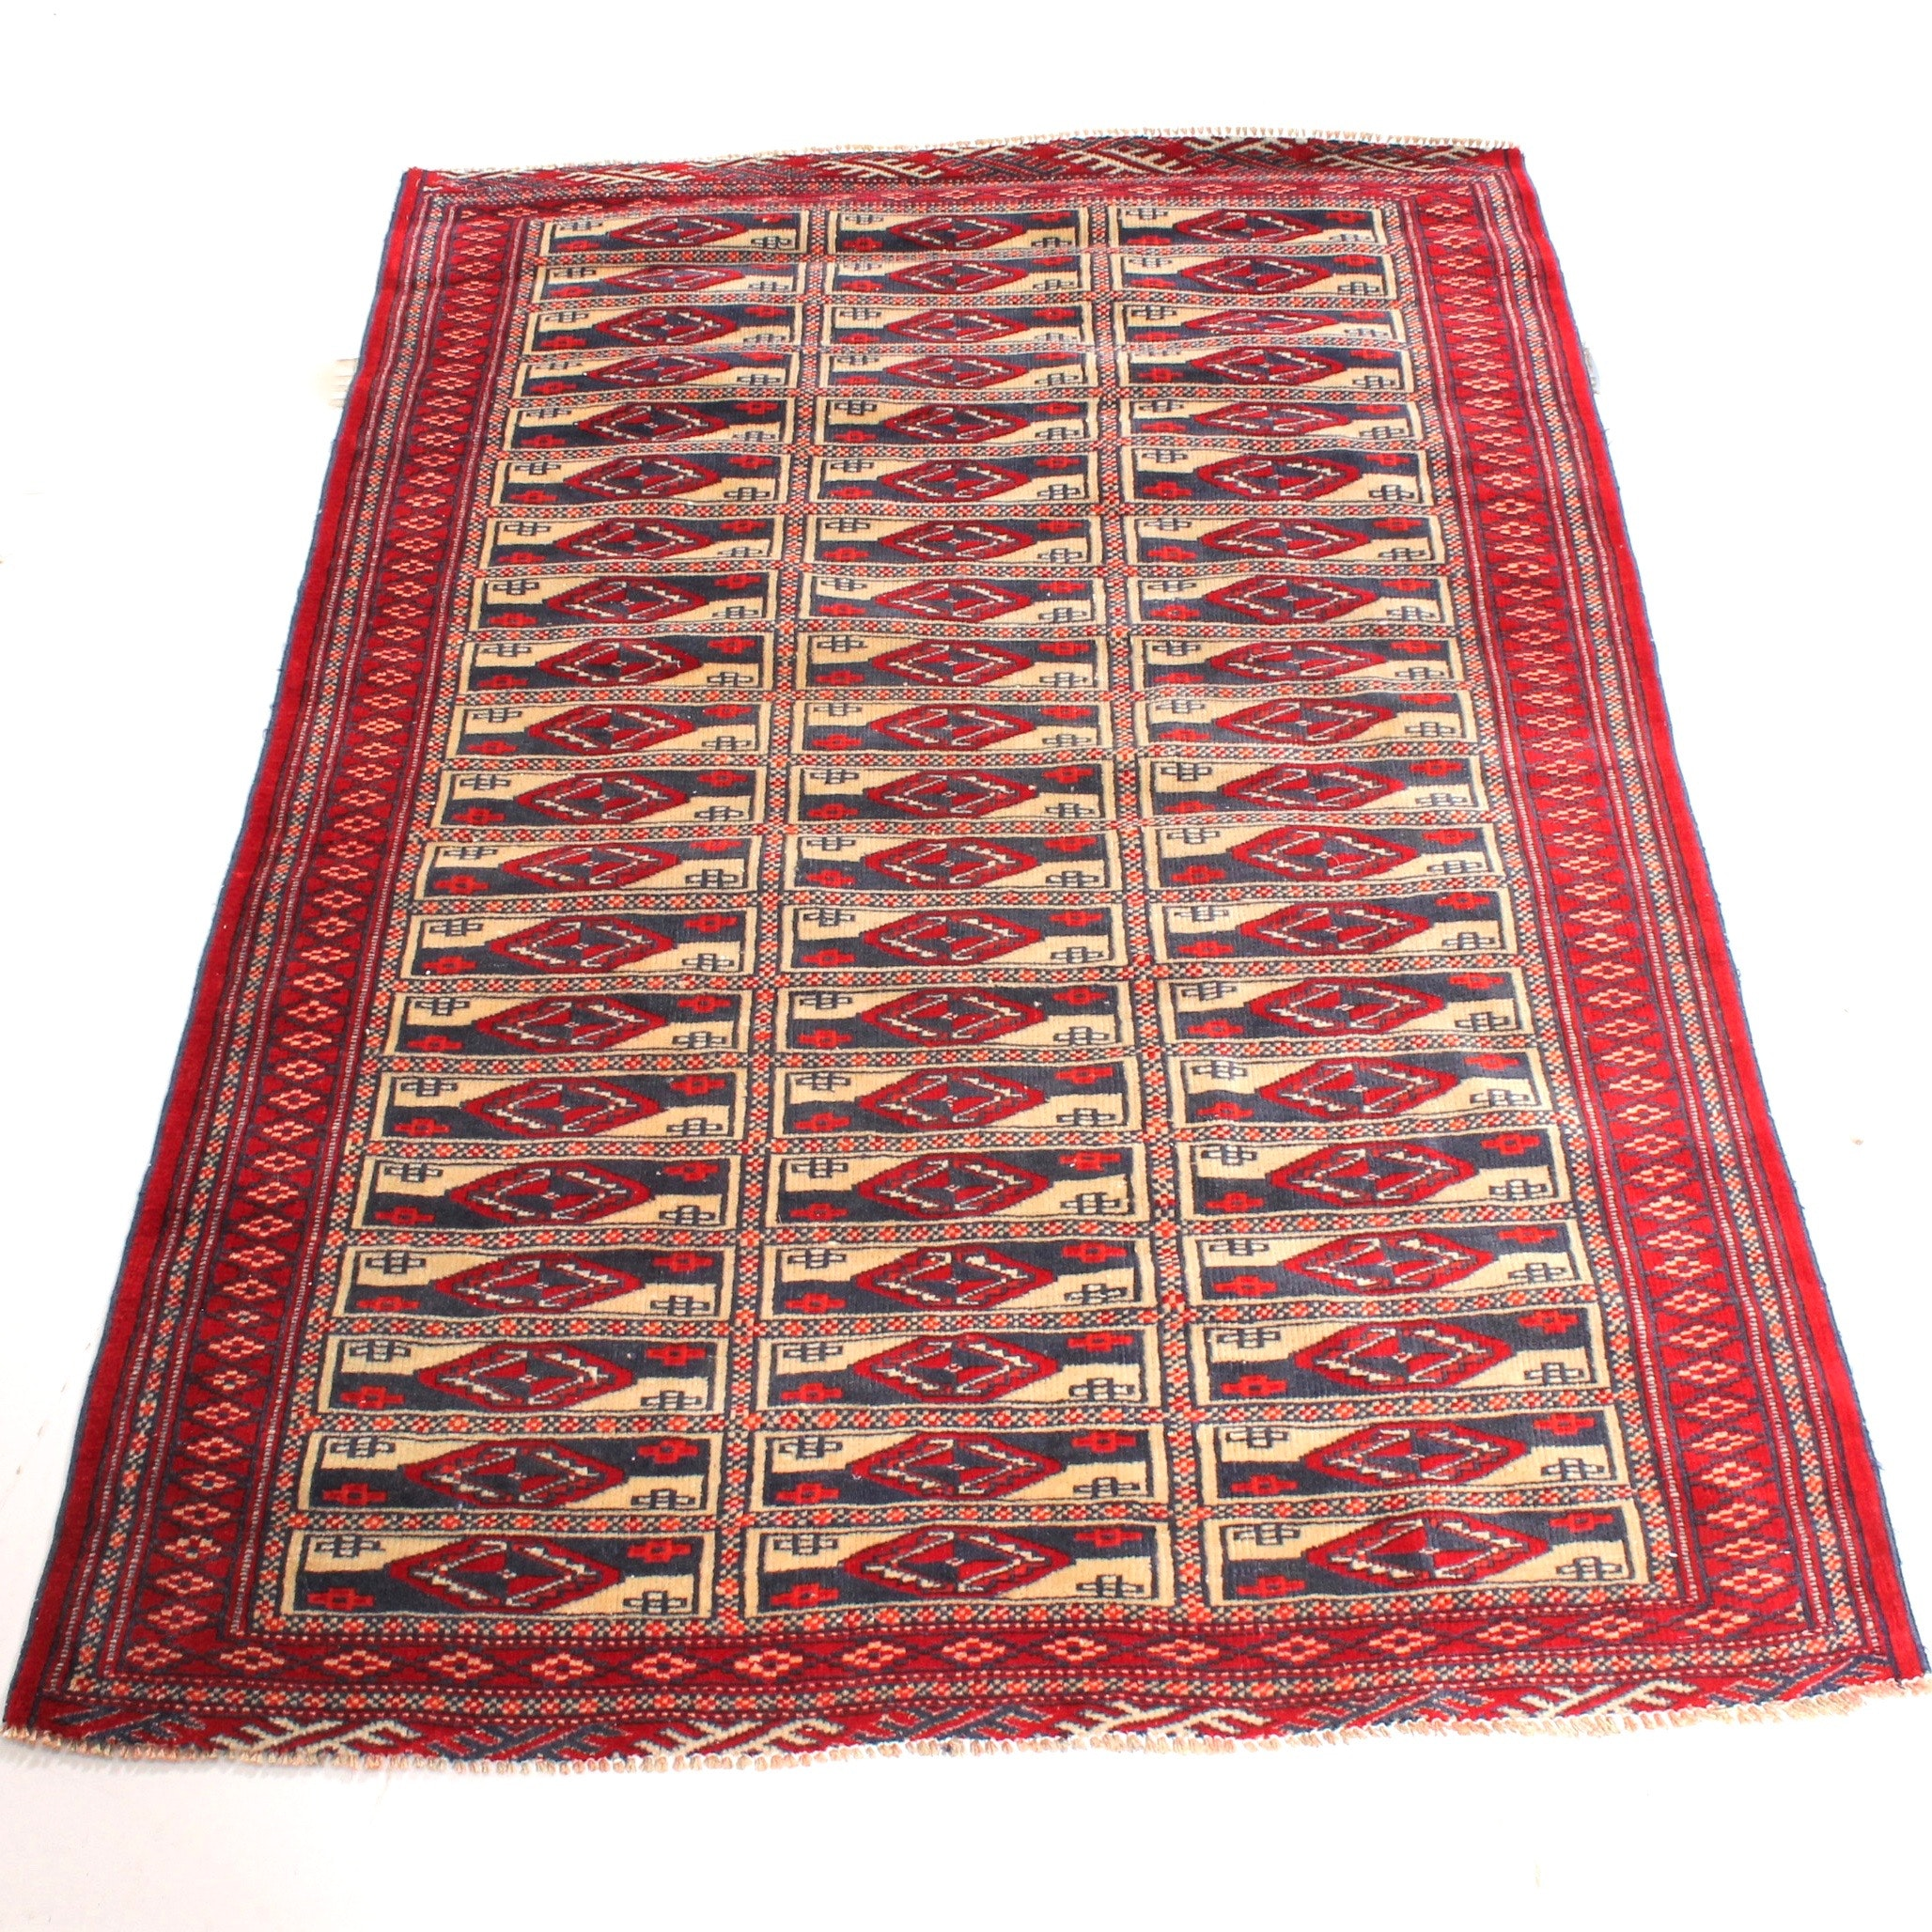 Vintage Hand Knotted Persian Turkman Rug